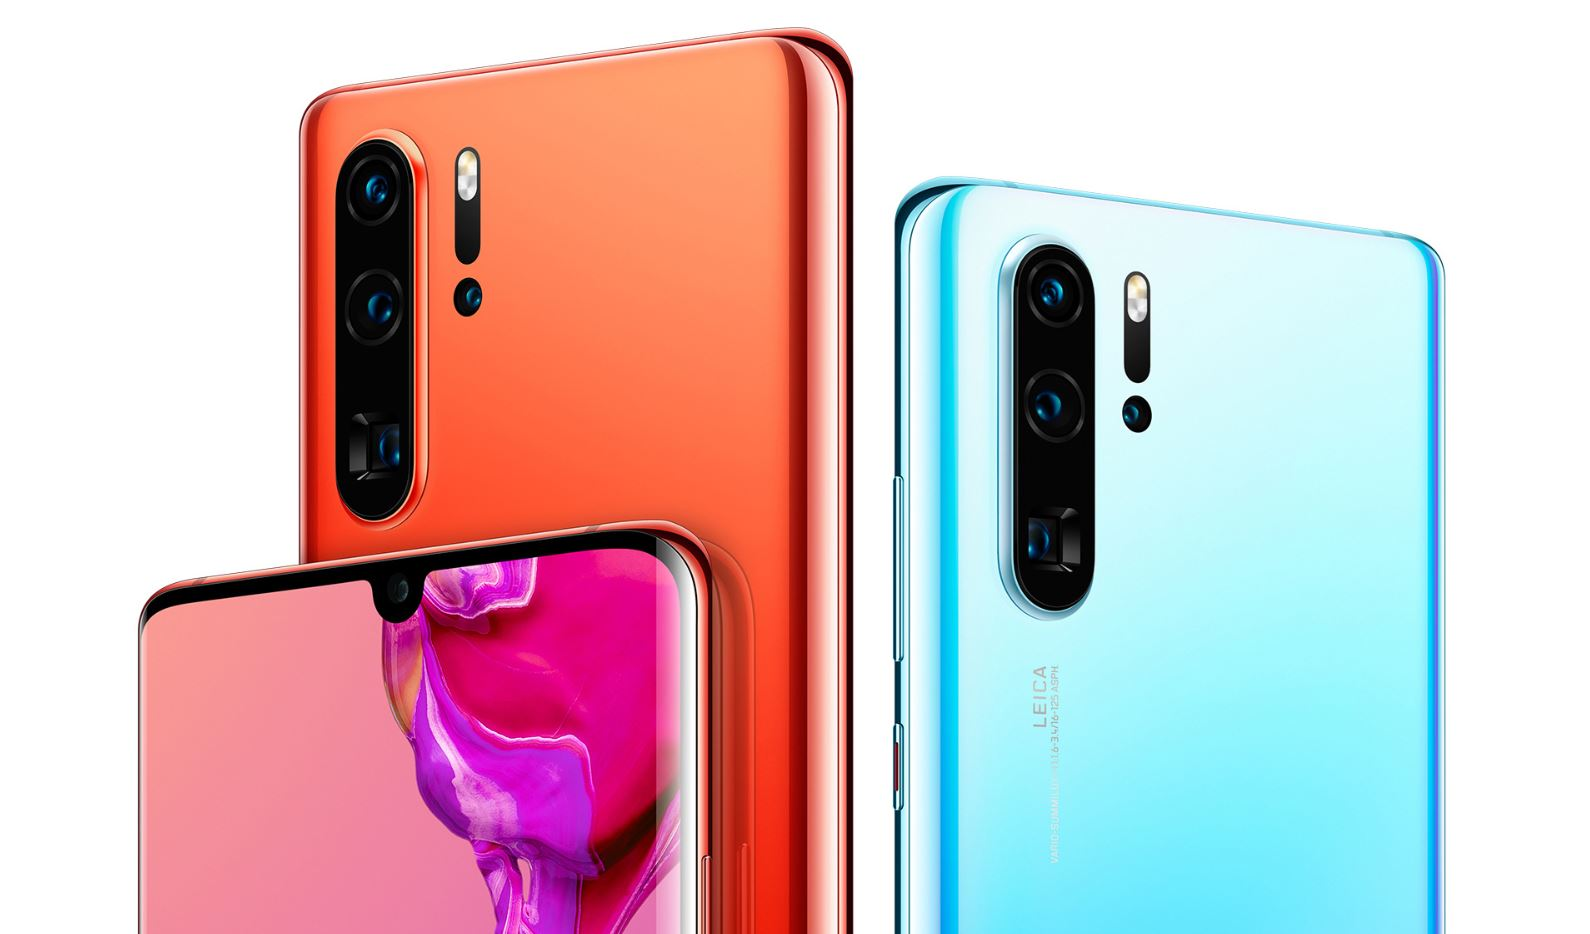 How To Use Burst Photography Mode on Huawei P30 and P30 Pro